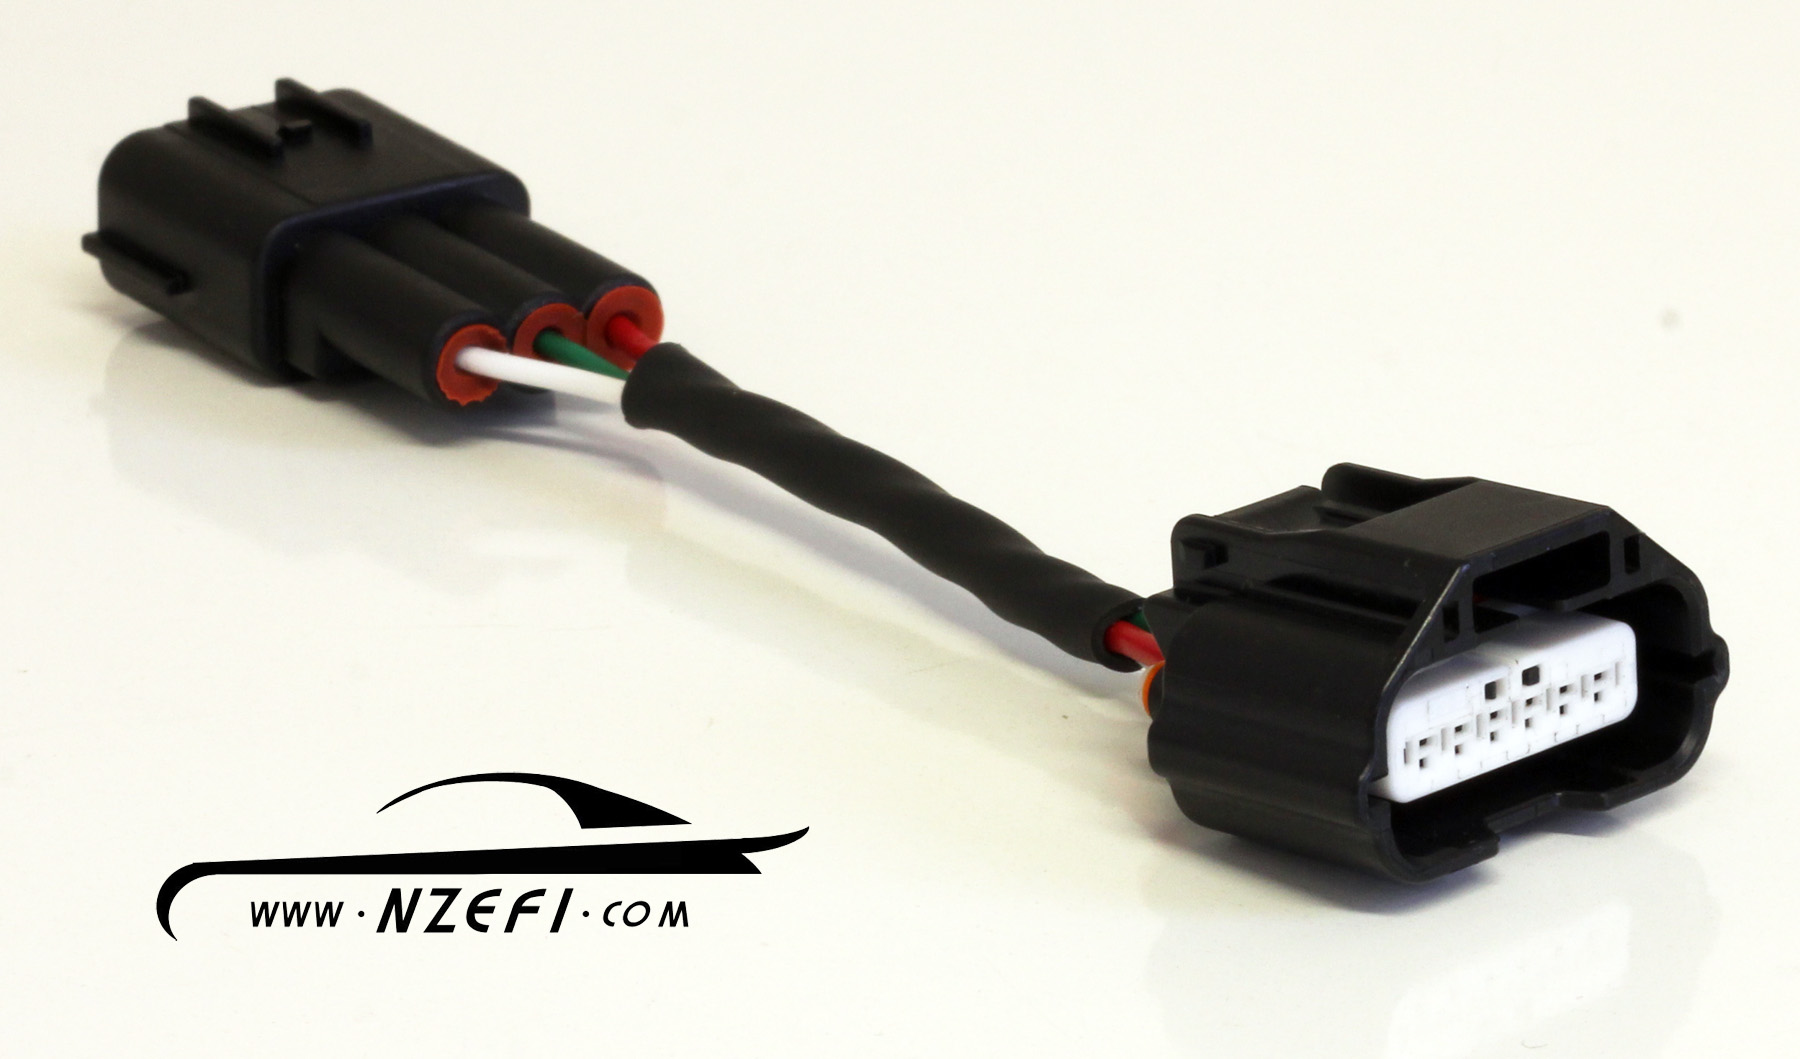 Afm Adapter Harness - Rb25det S2 And Neo Upgrading To R35 Gtr Cartridge Afm